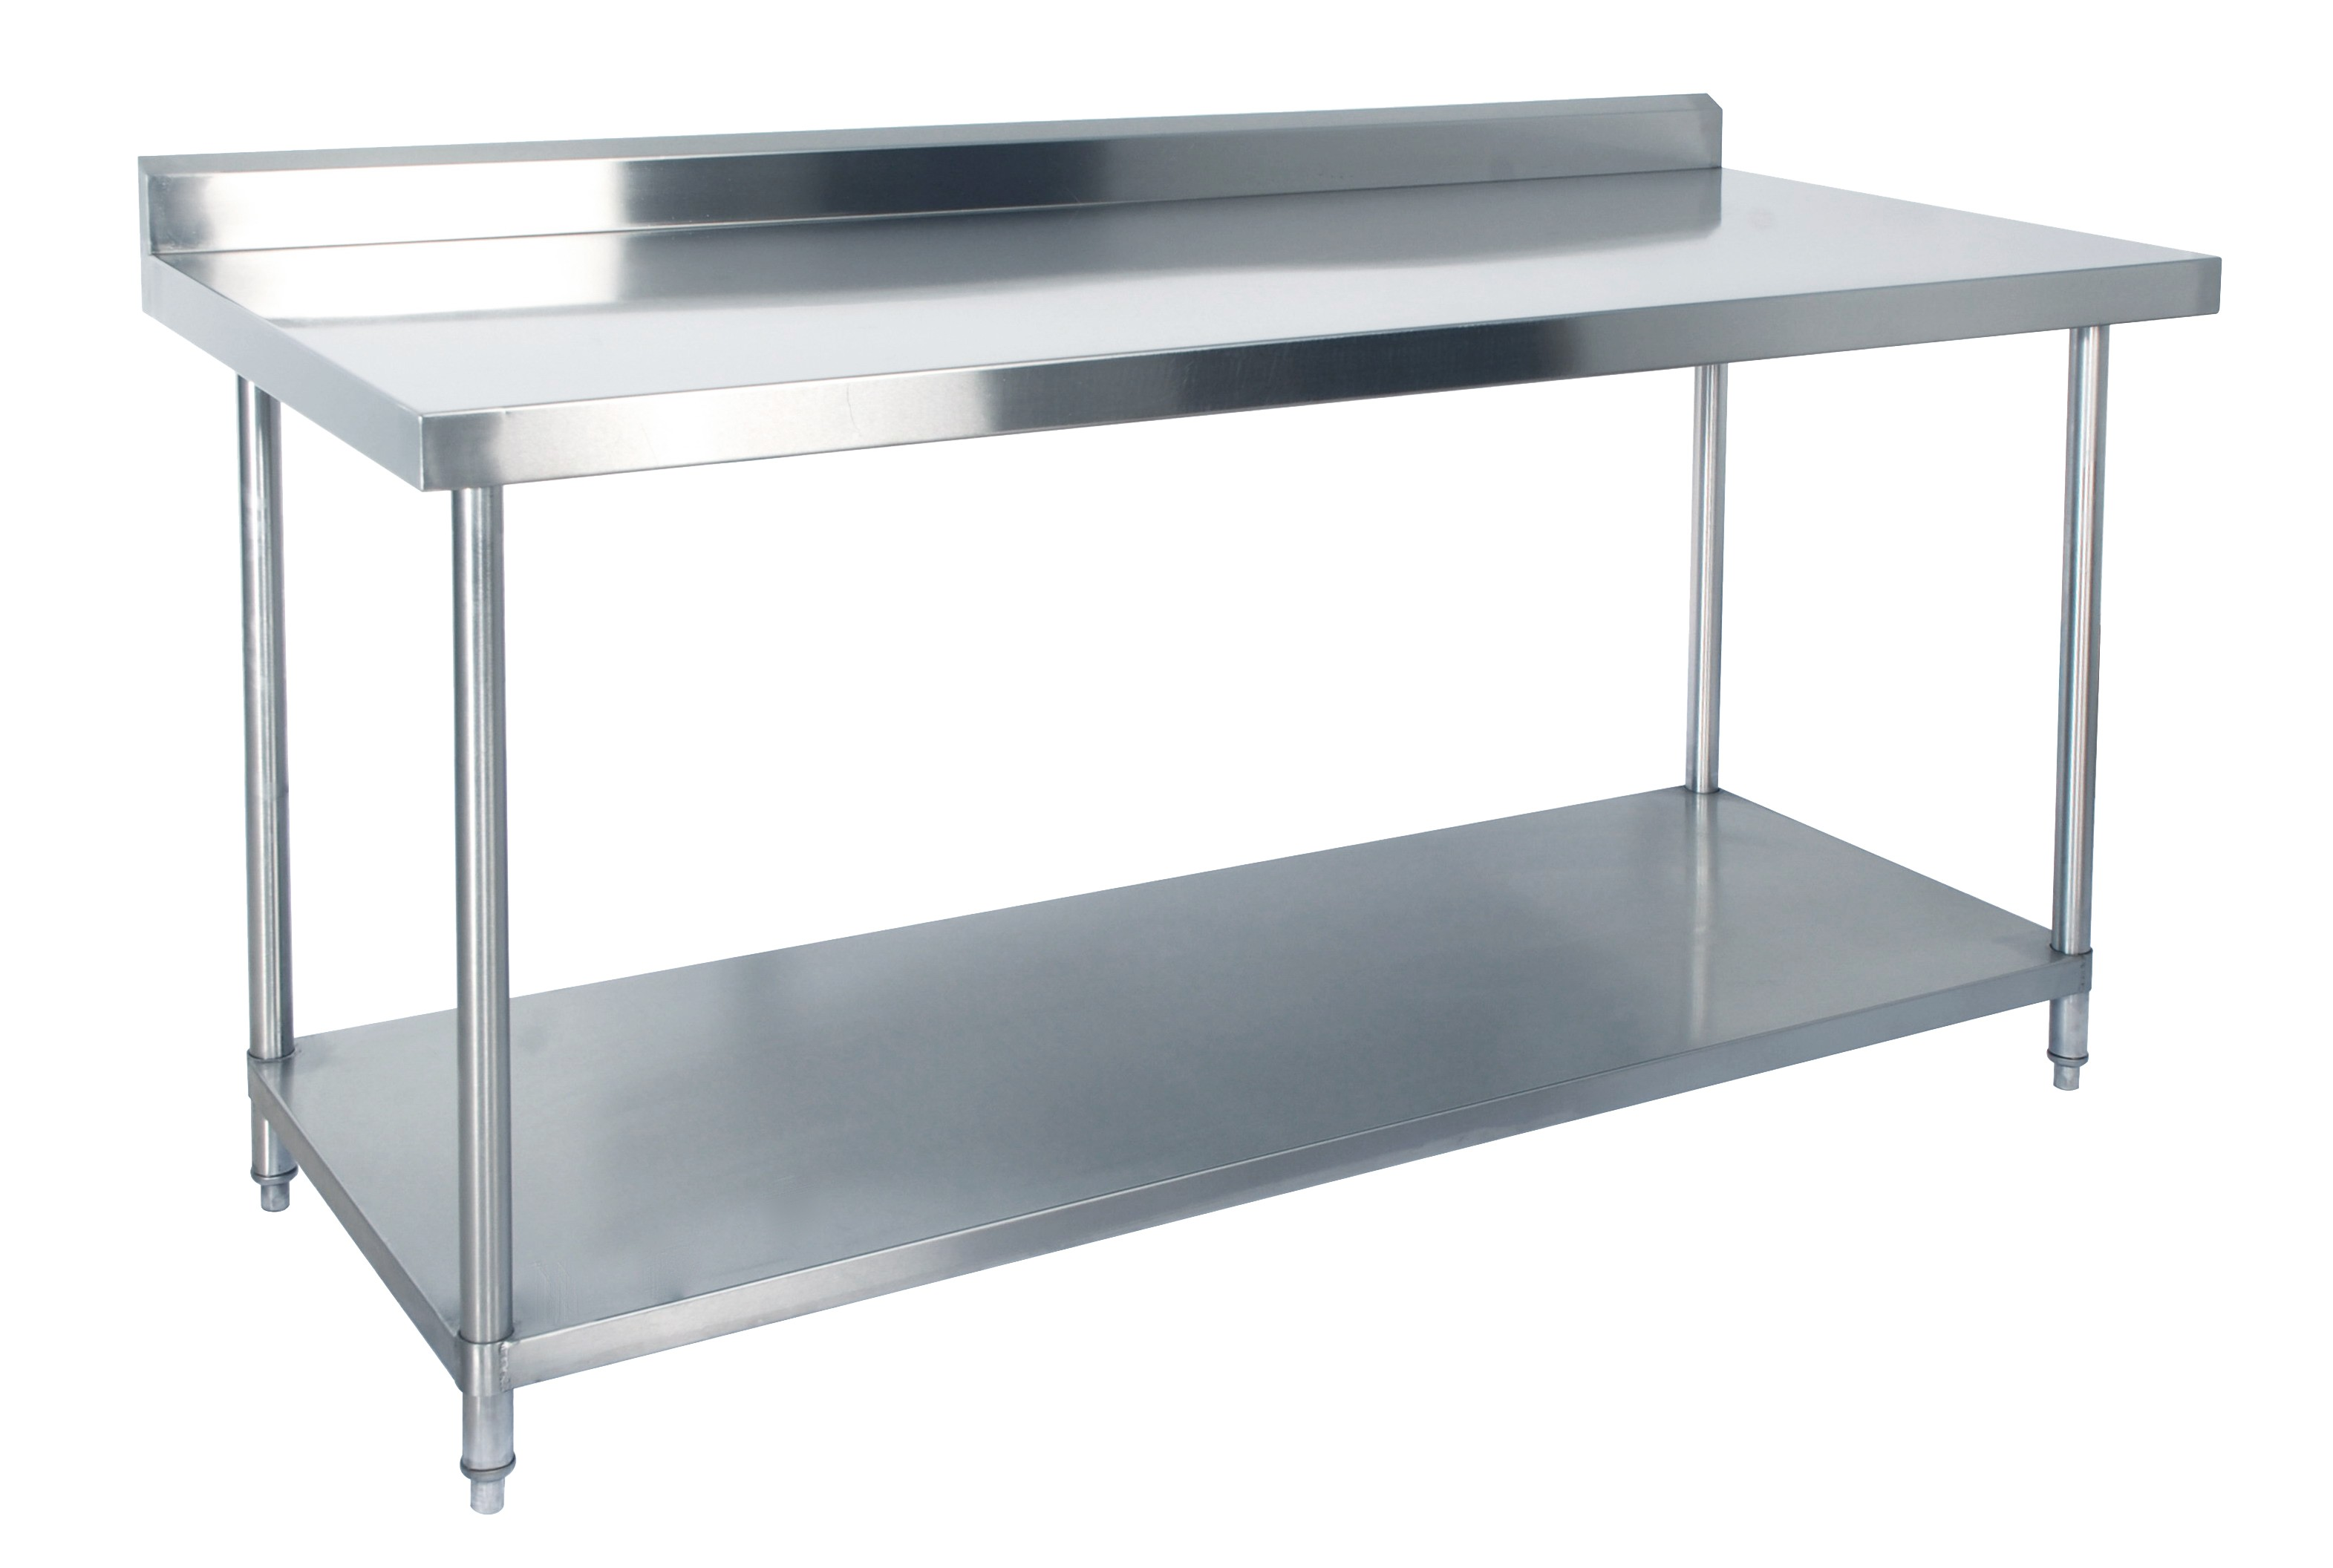 Stainless Steel Prep Table Shelf Commercial Stainless Steel Work Table Ebay 100 Cover For Big